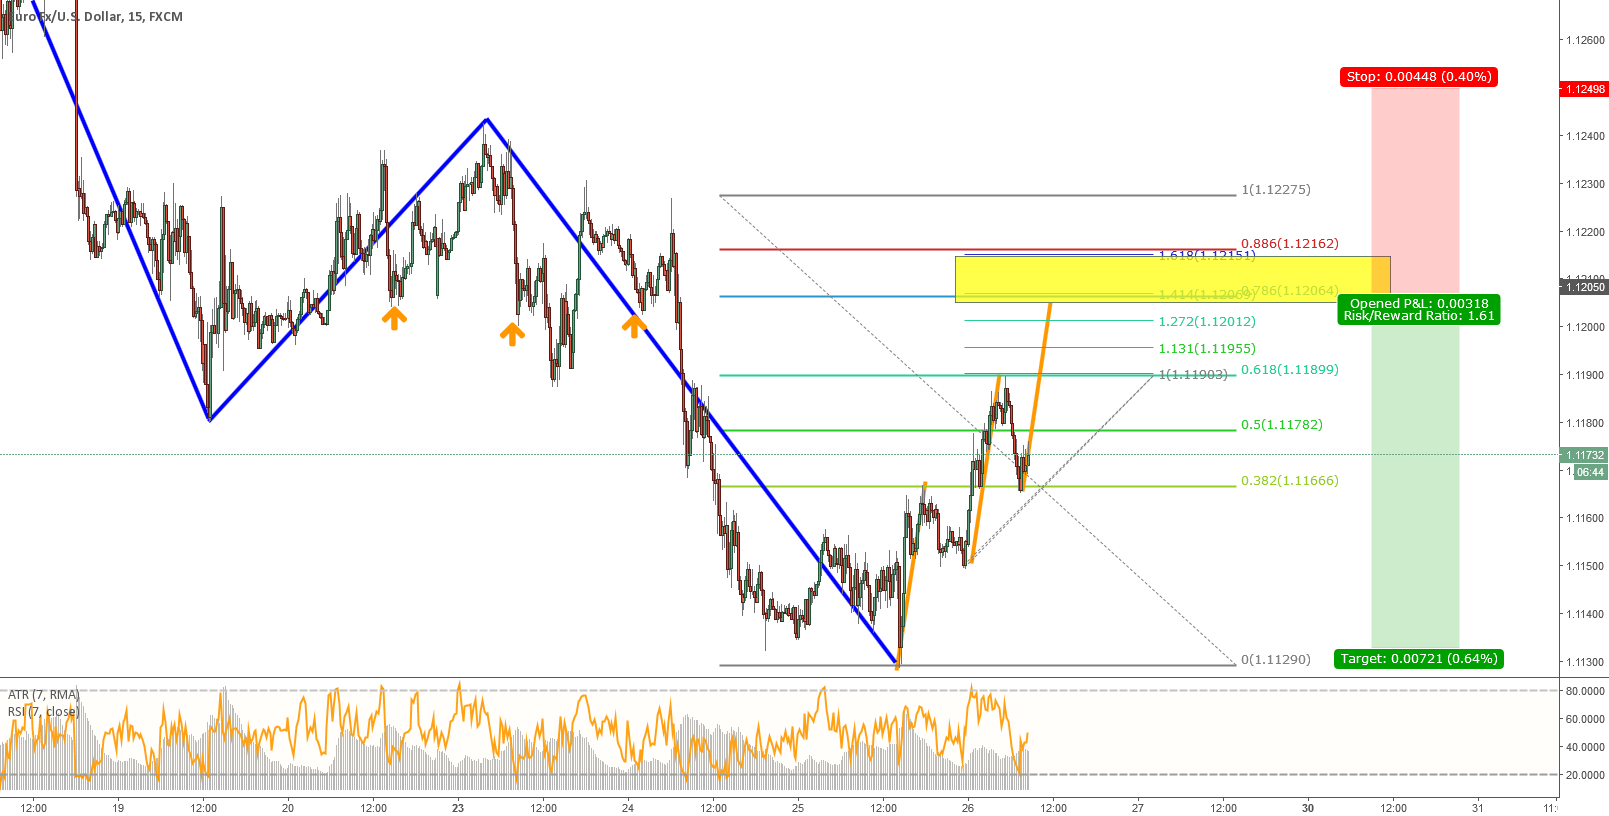 EURUSD - Potential Trend Continuation Opportunity 15 M